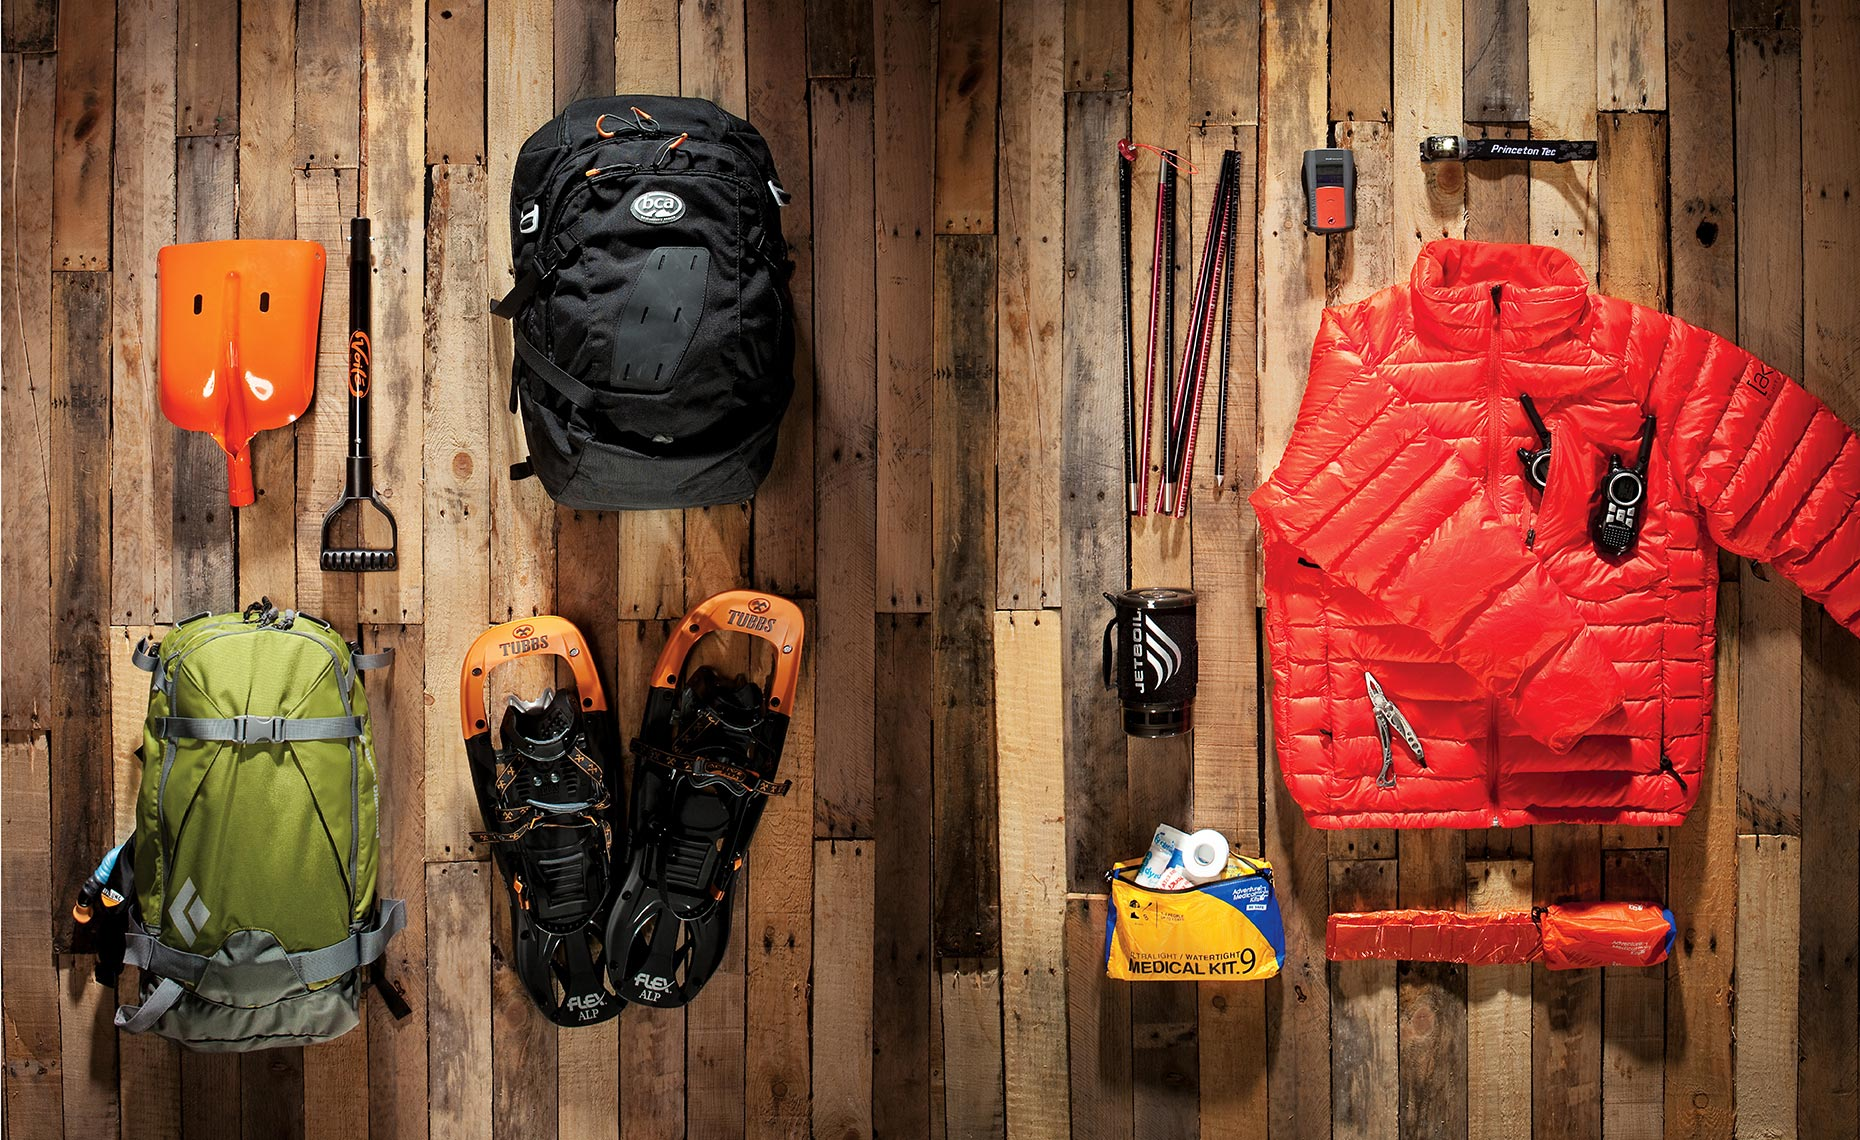 02_Backcountry_Snowboarding_Product_Chris_Wellhausen_Photography-DUP.JPG